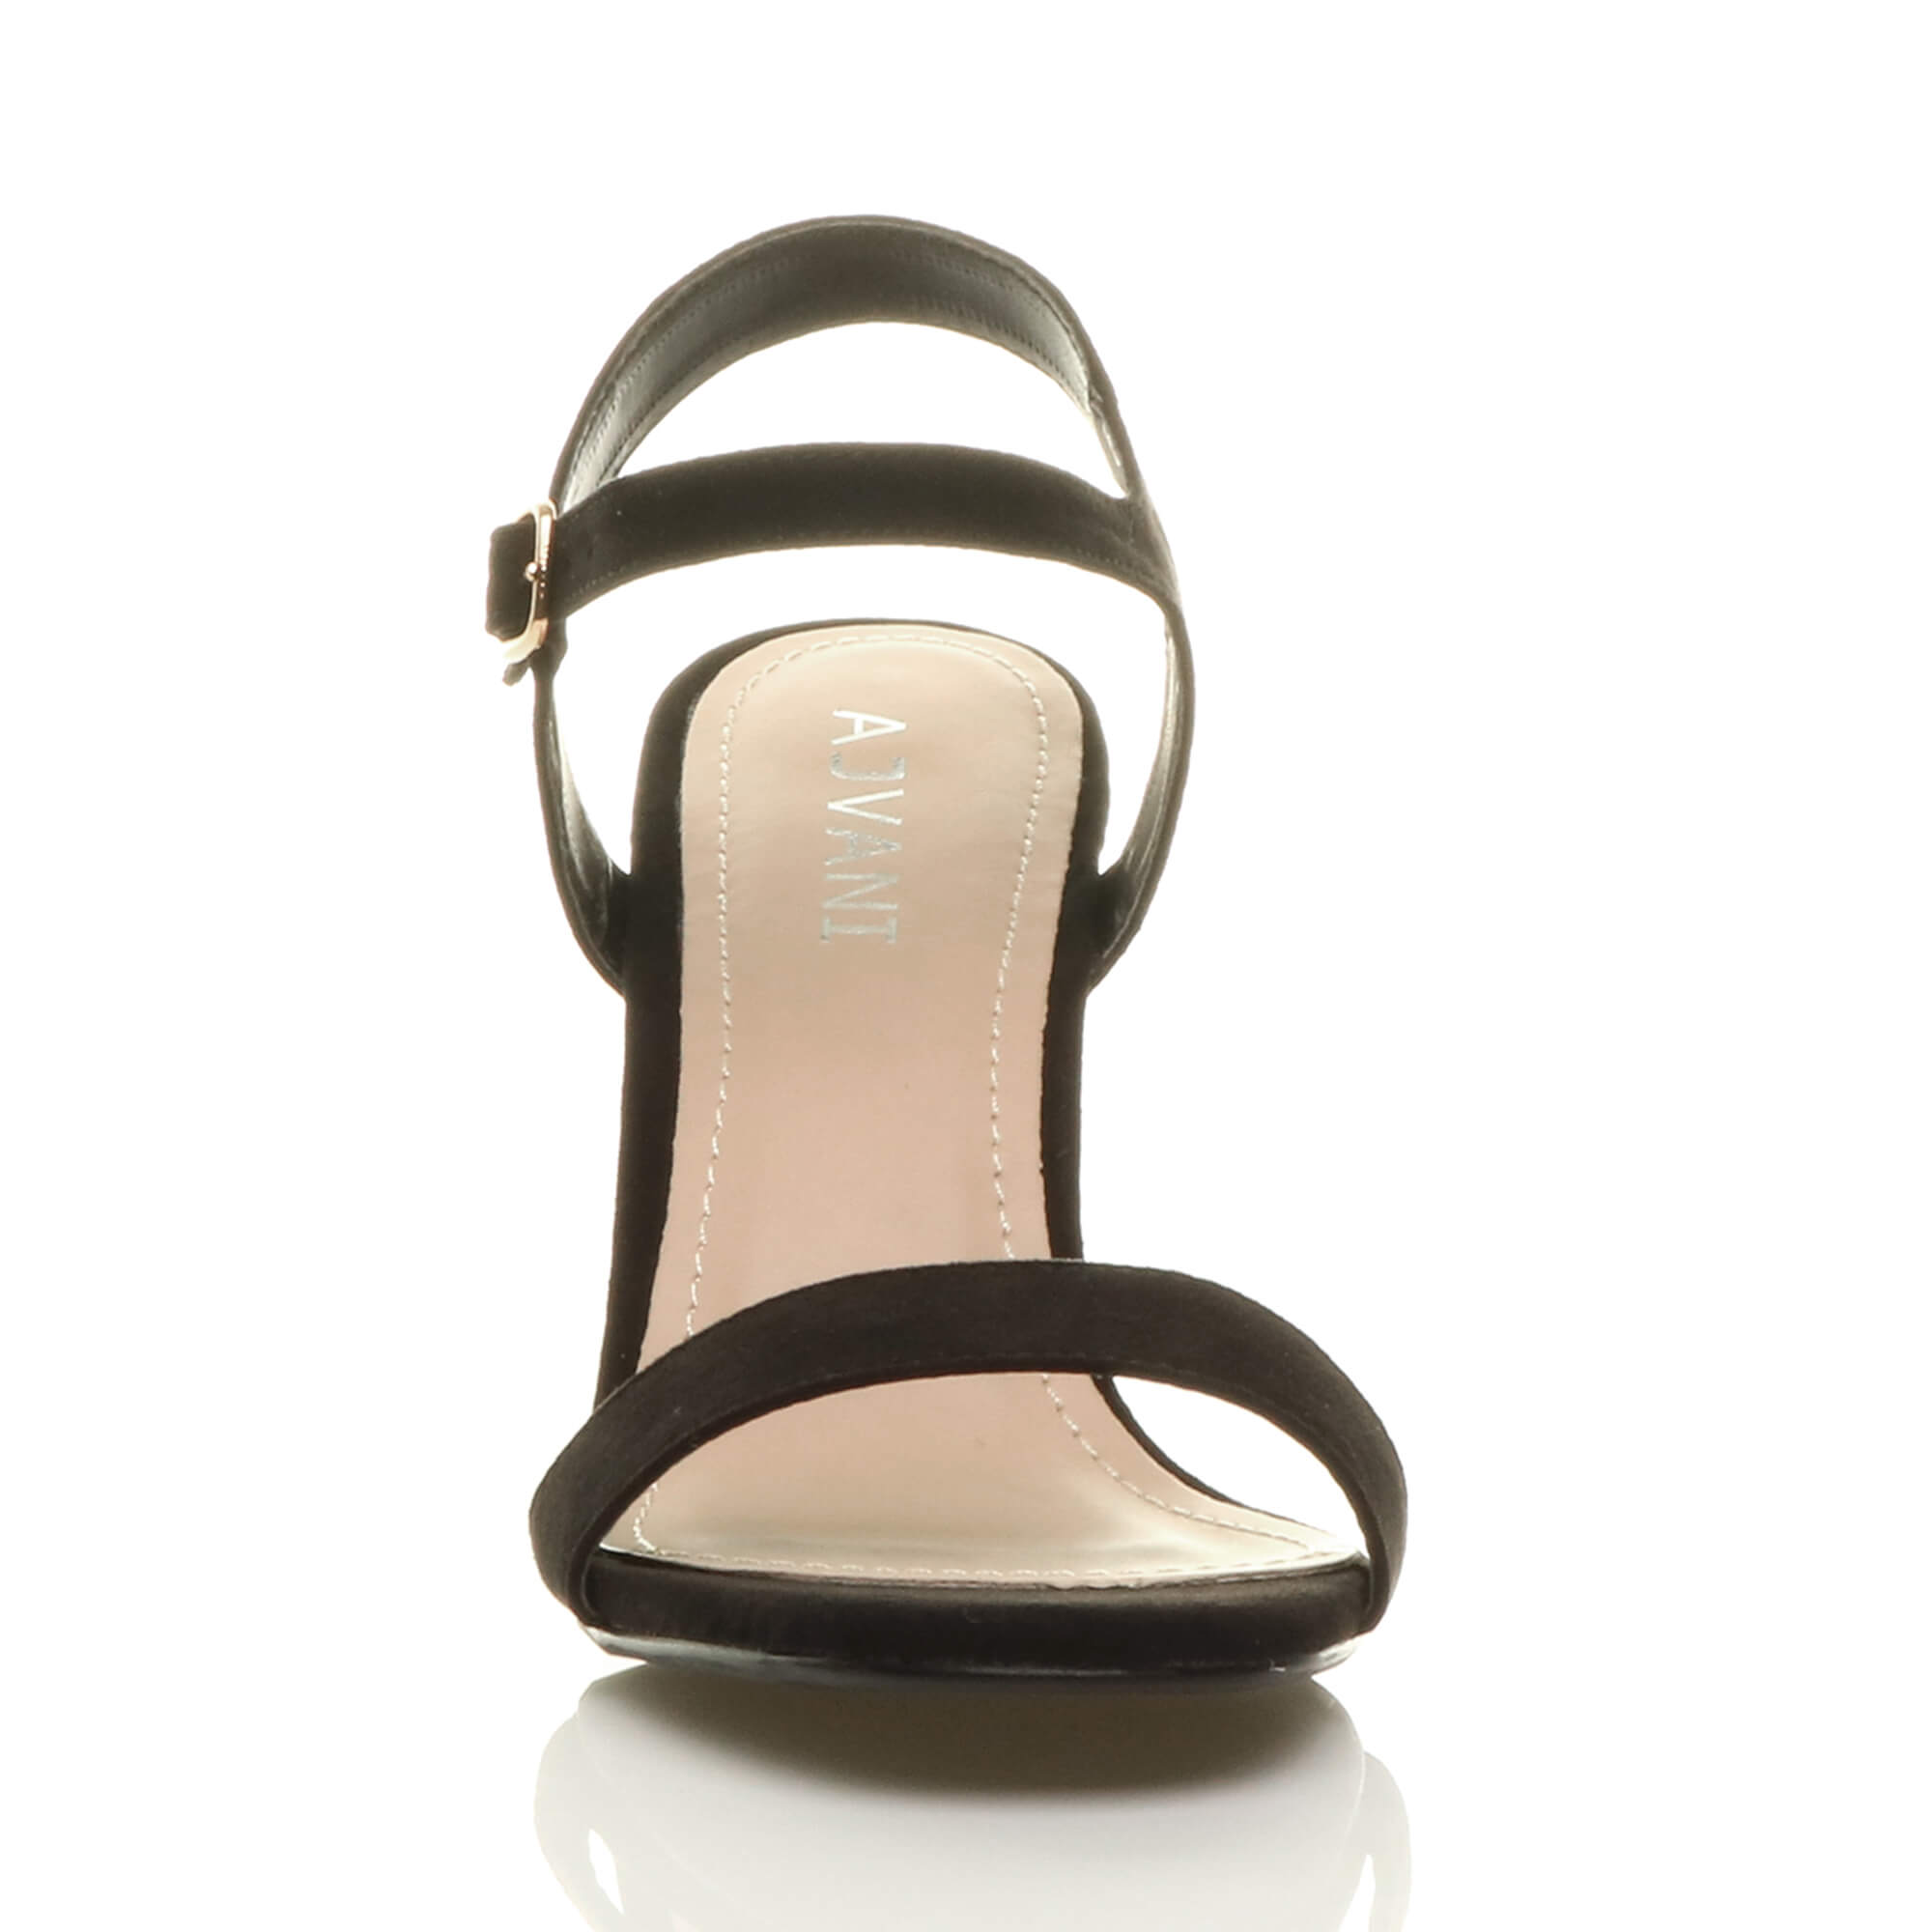 WOMENS-LADIES-HIGH-HEEL-BUCKLE-STRAPPY-BASIC-BARELY-THERE-SANDALS-SHOES-SIZE thumbnail 13